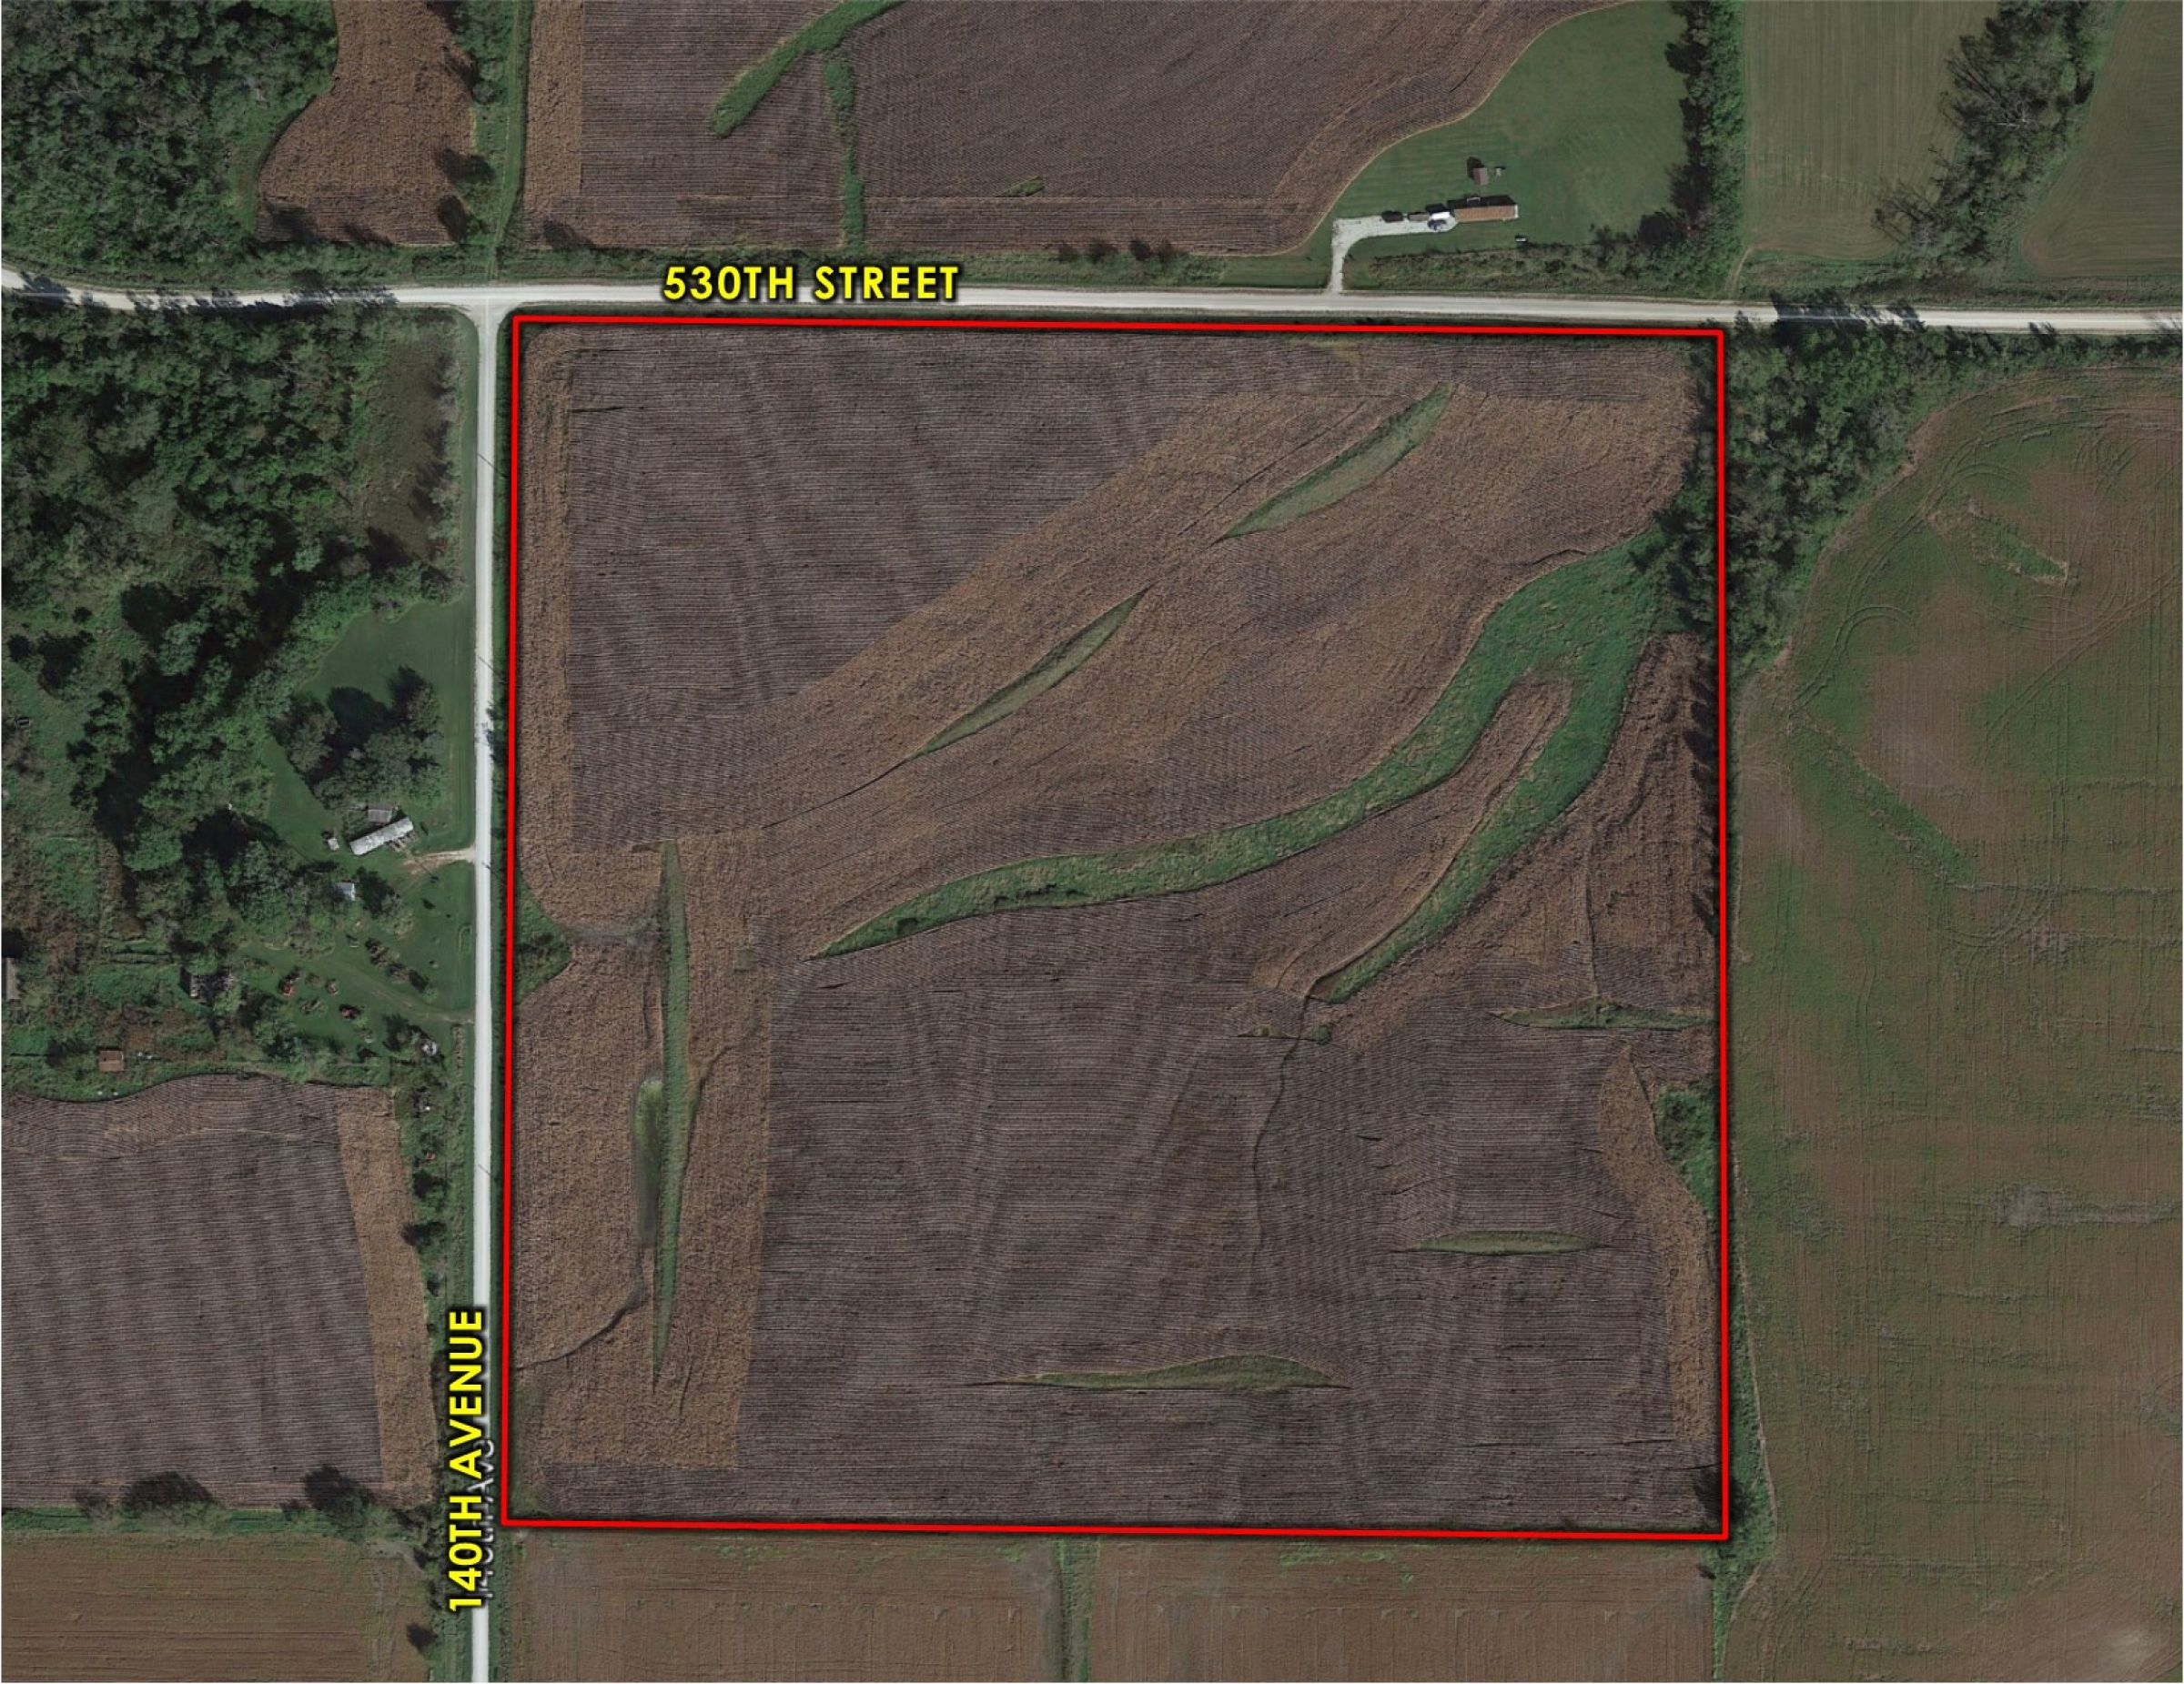 Peoples Company Land For Sale - Lucas County, IA - 530th Street, Lucas, IA 50151